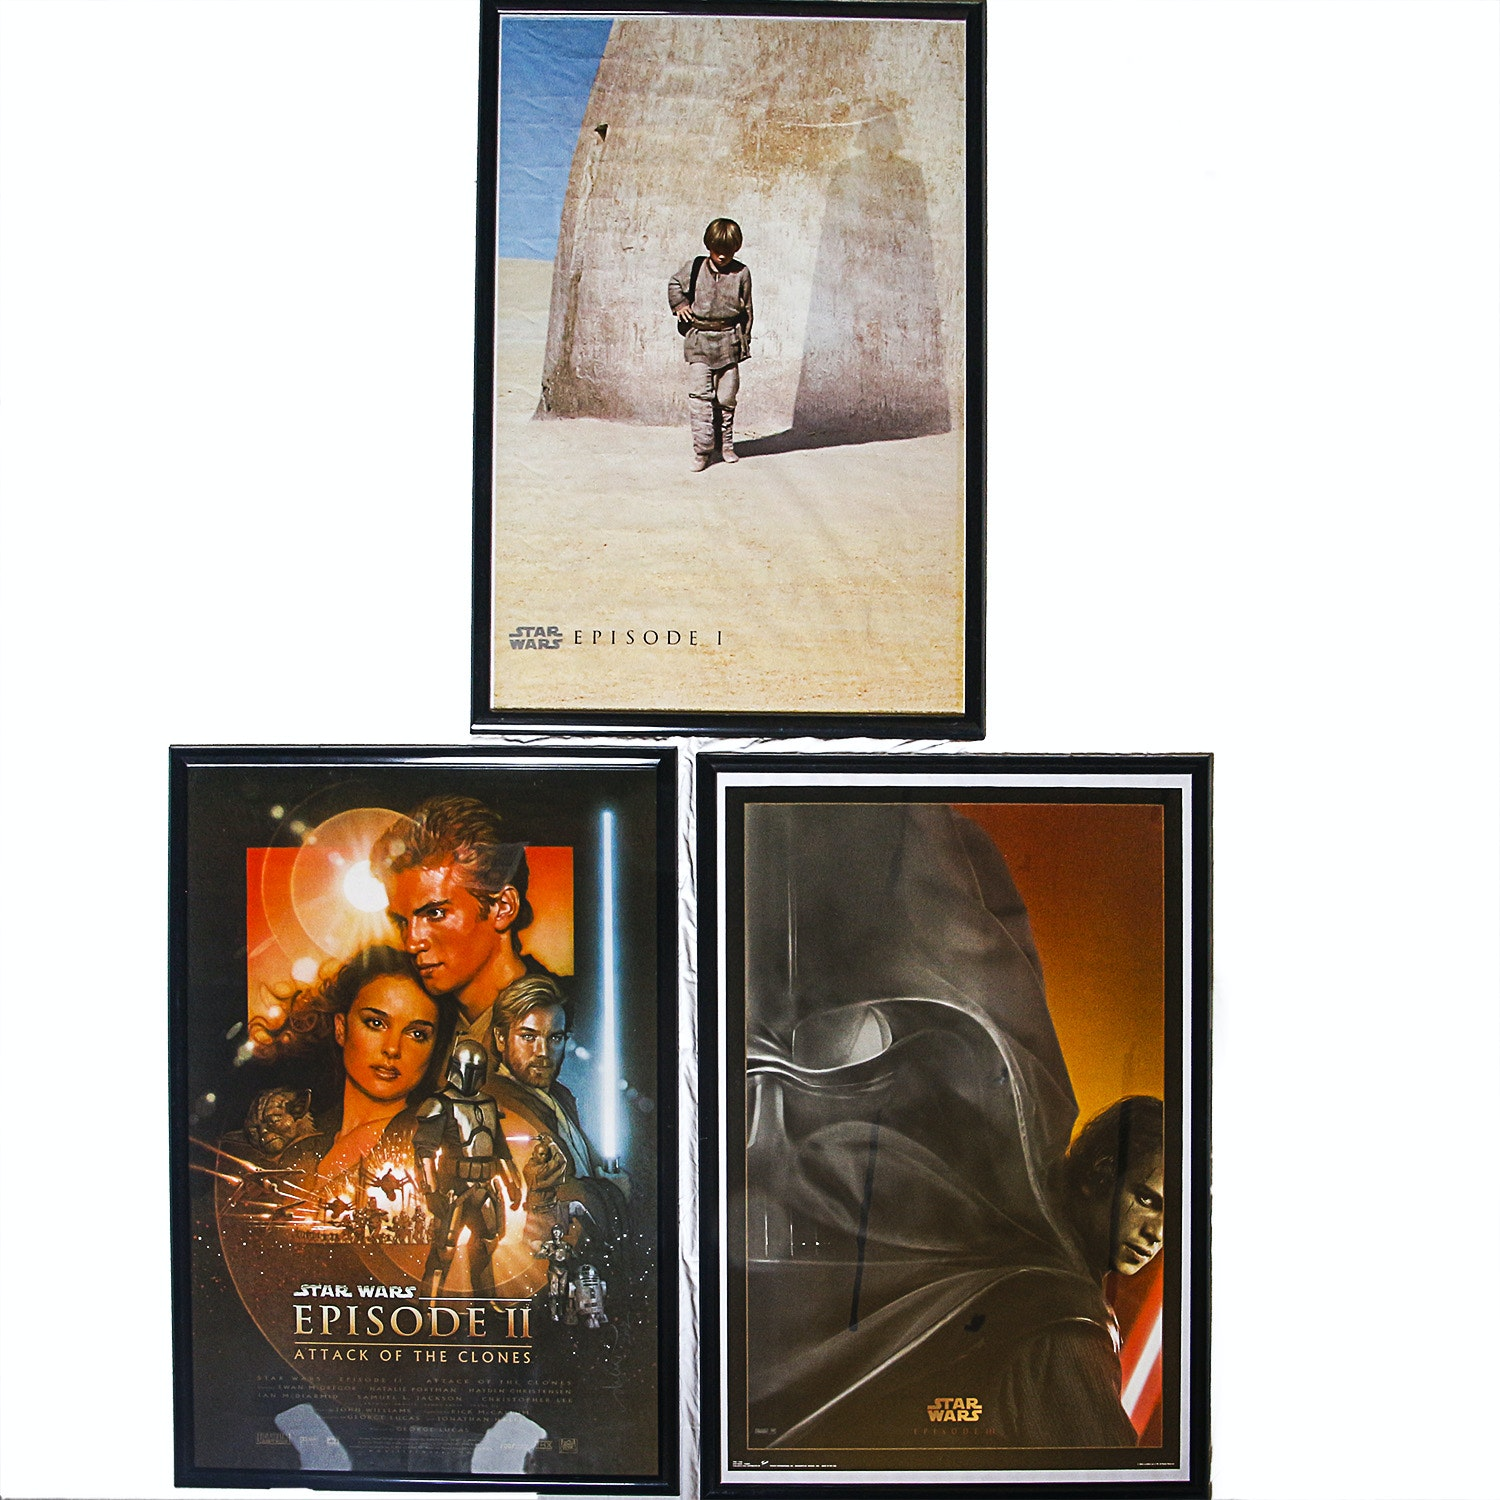 """Star Wars"" Episodes I, II, and III Posters"